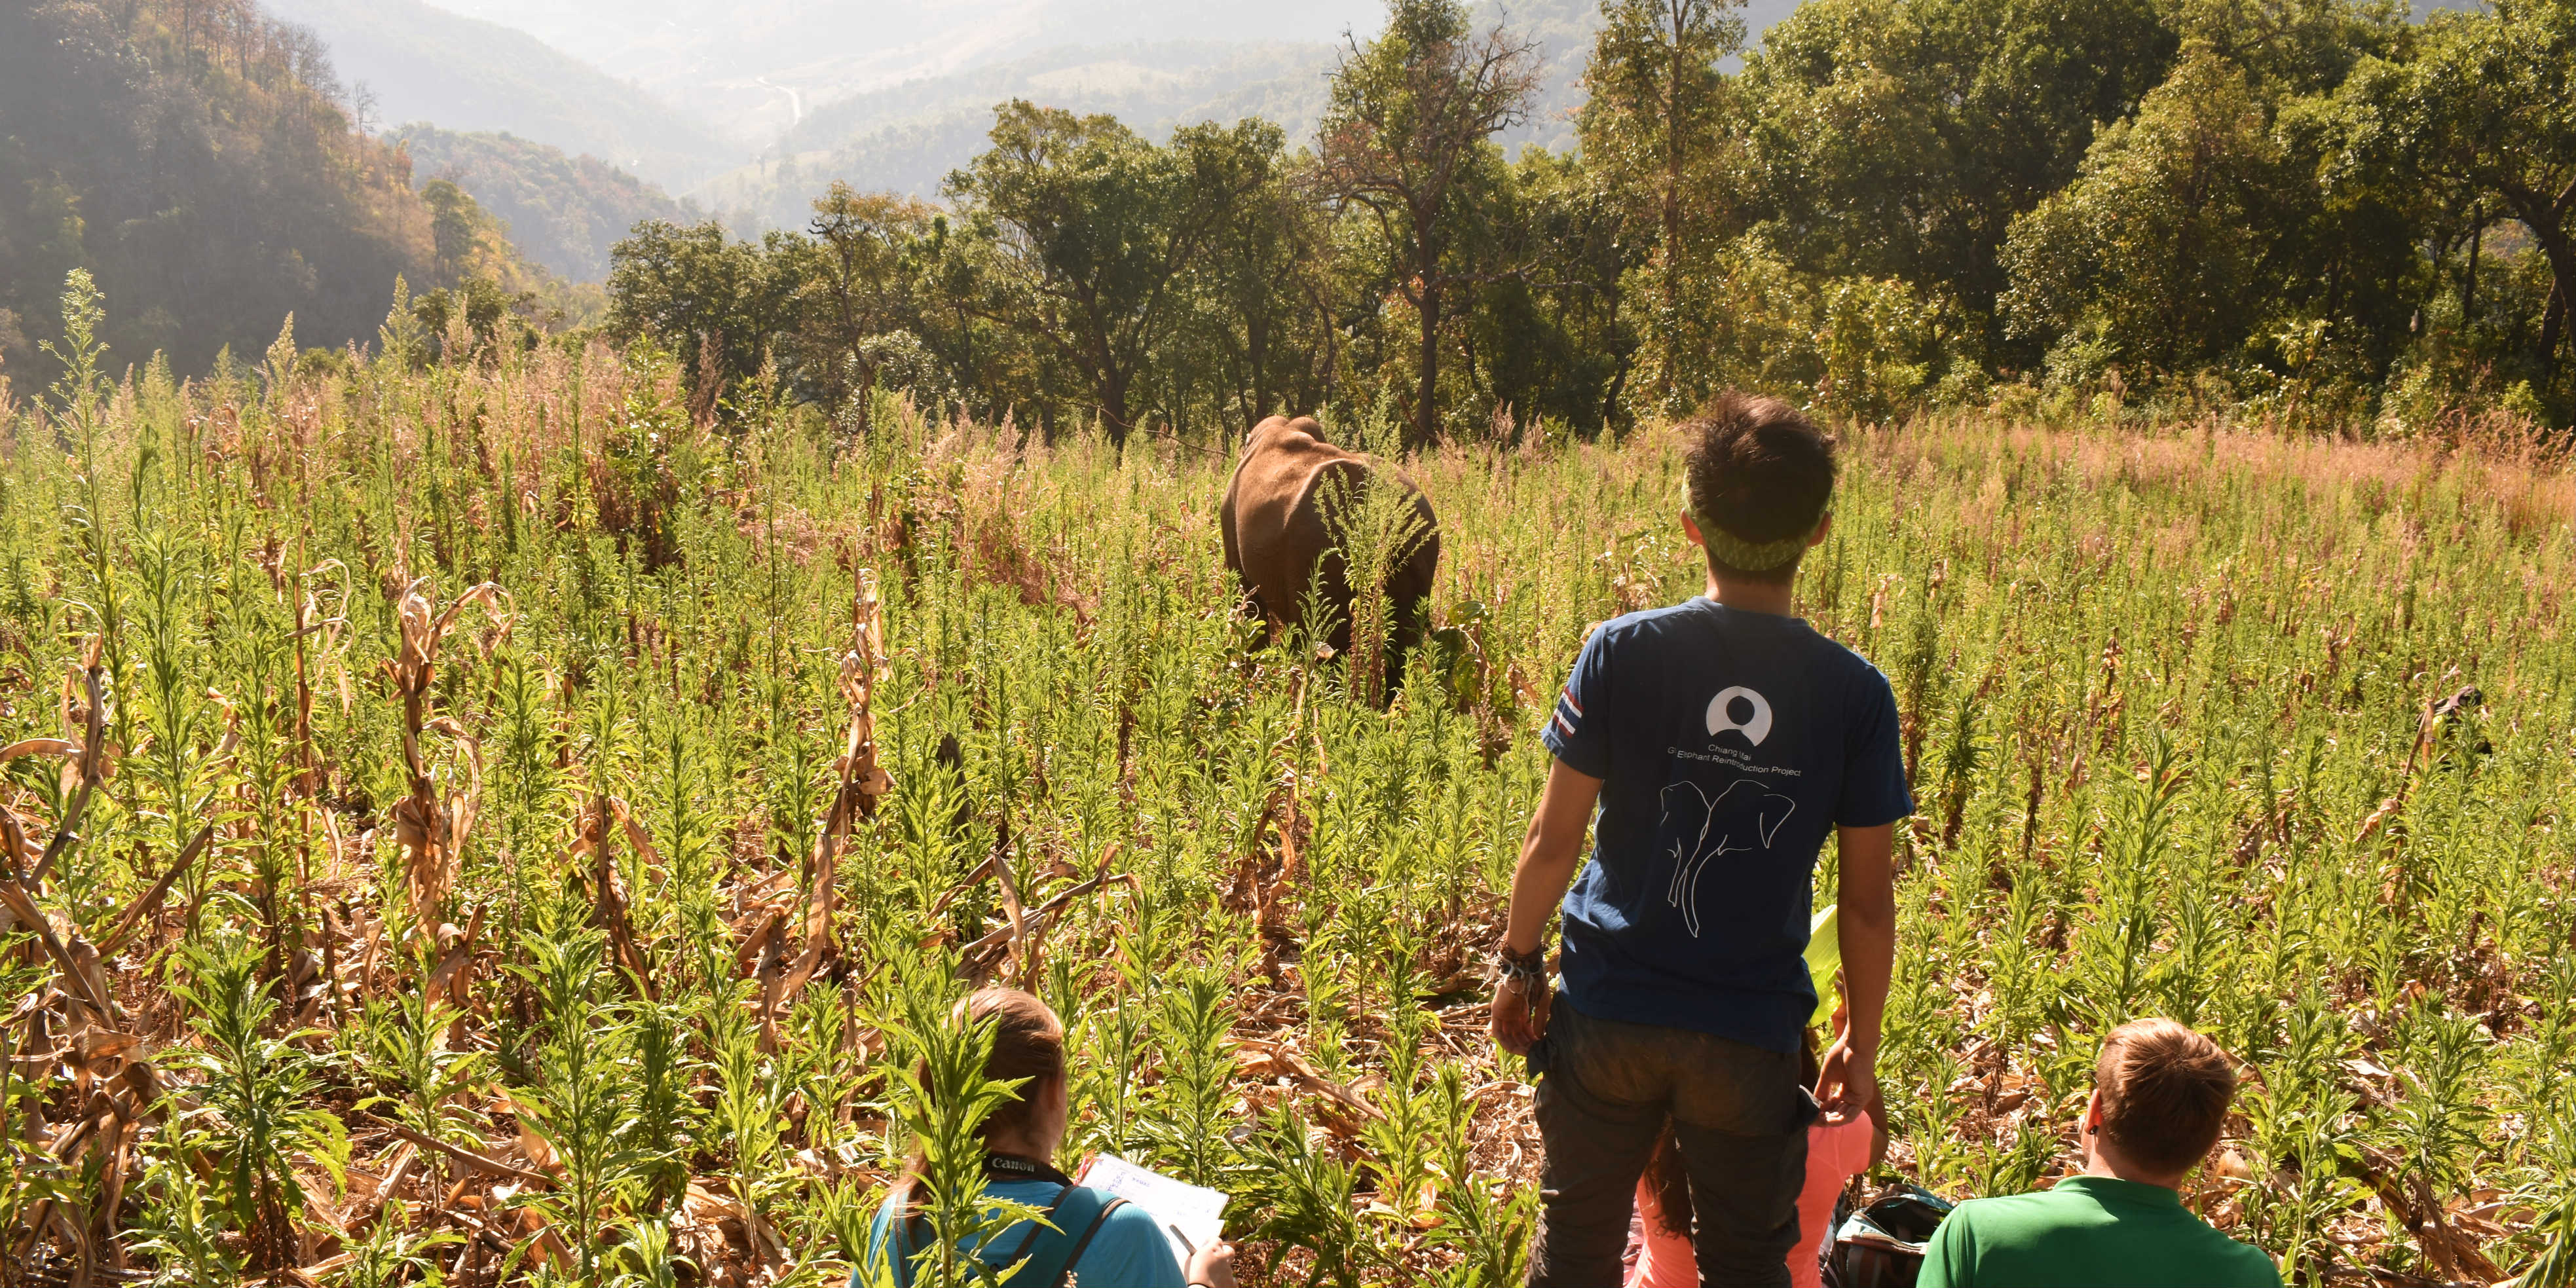 Gap year ideas in Thailand include opportunities to volunteer with elephants in Chiang Mai.